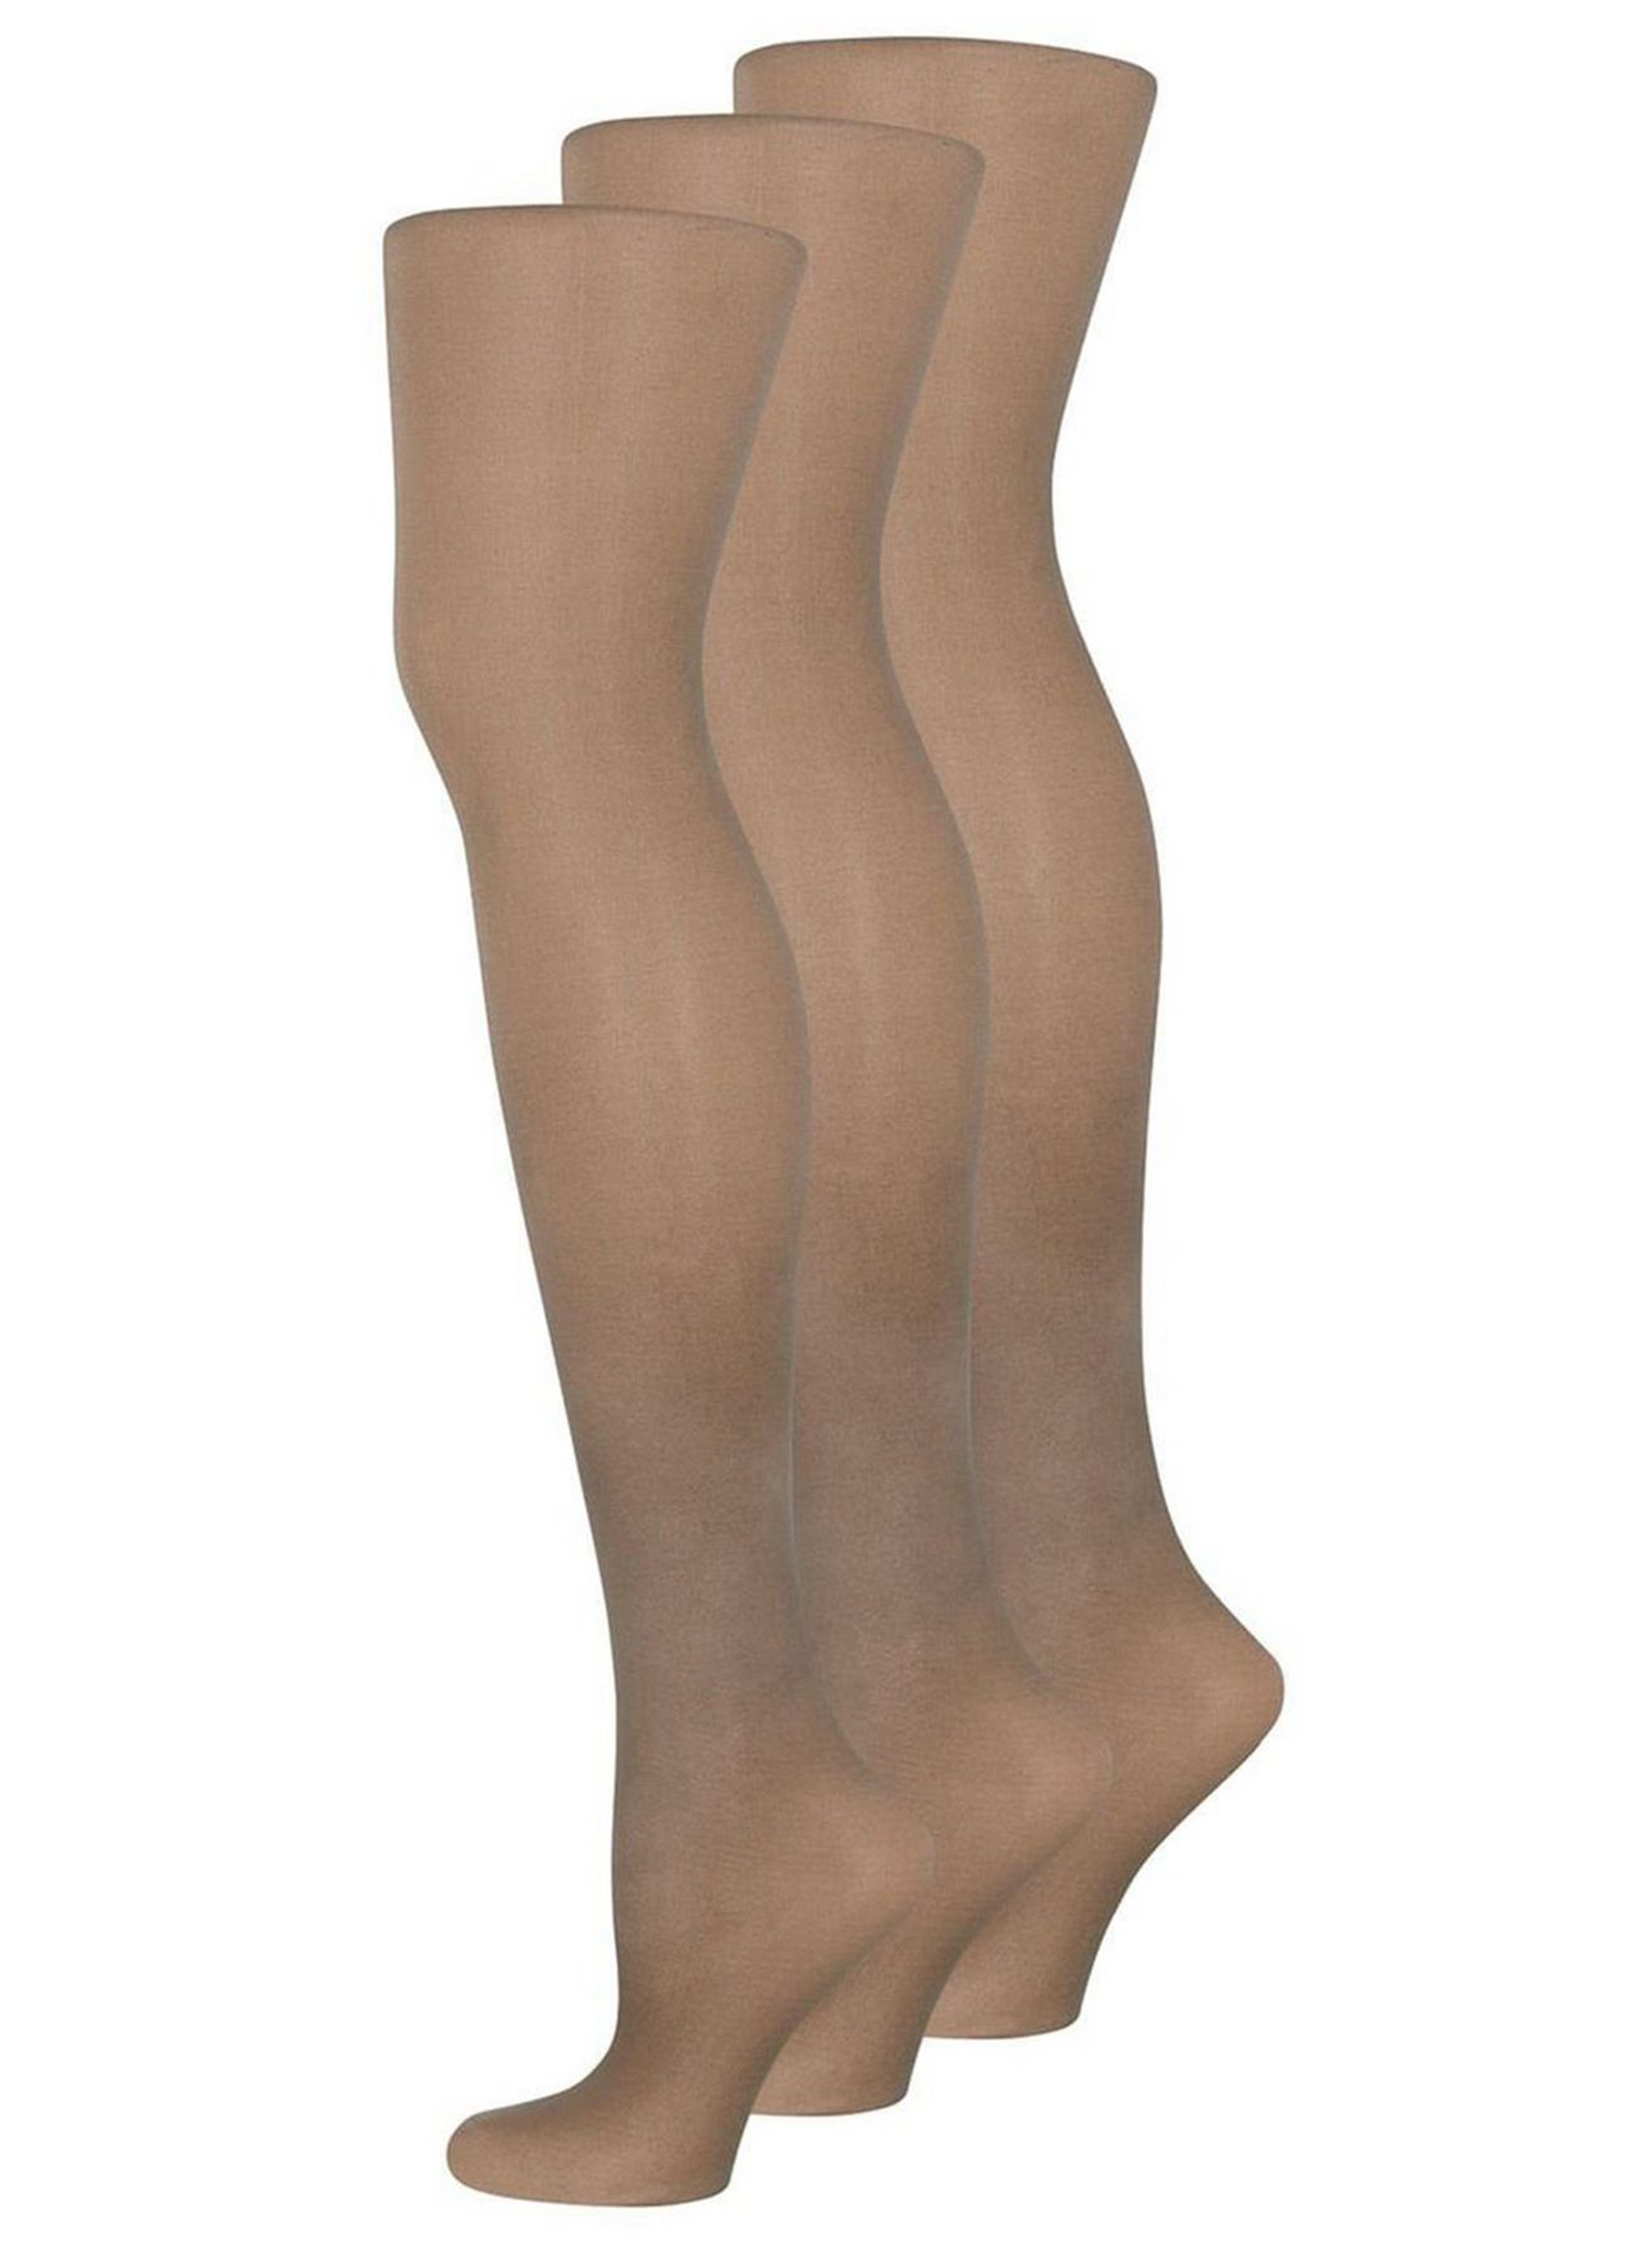 Pretty Polly 15 Denier 3 Pack Curve Tights in Beige